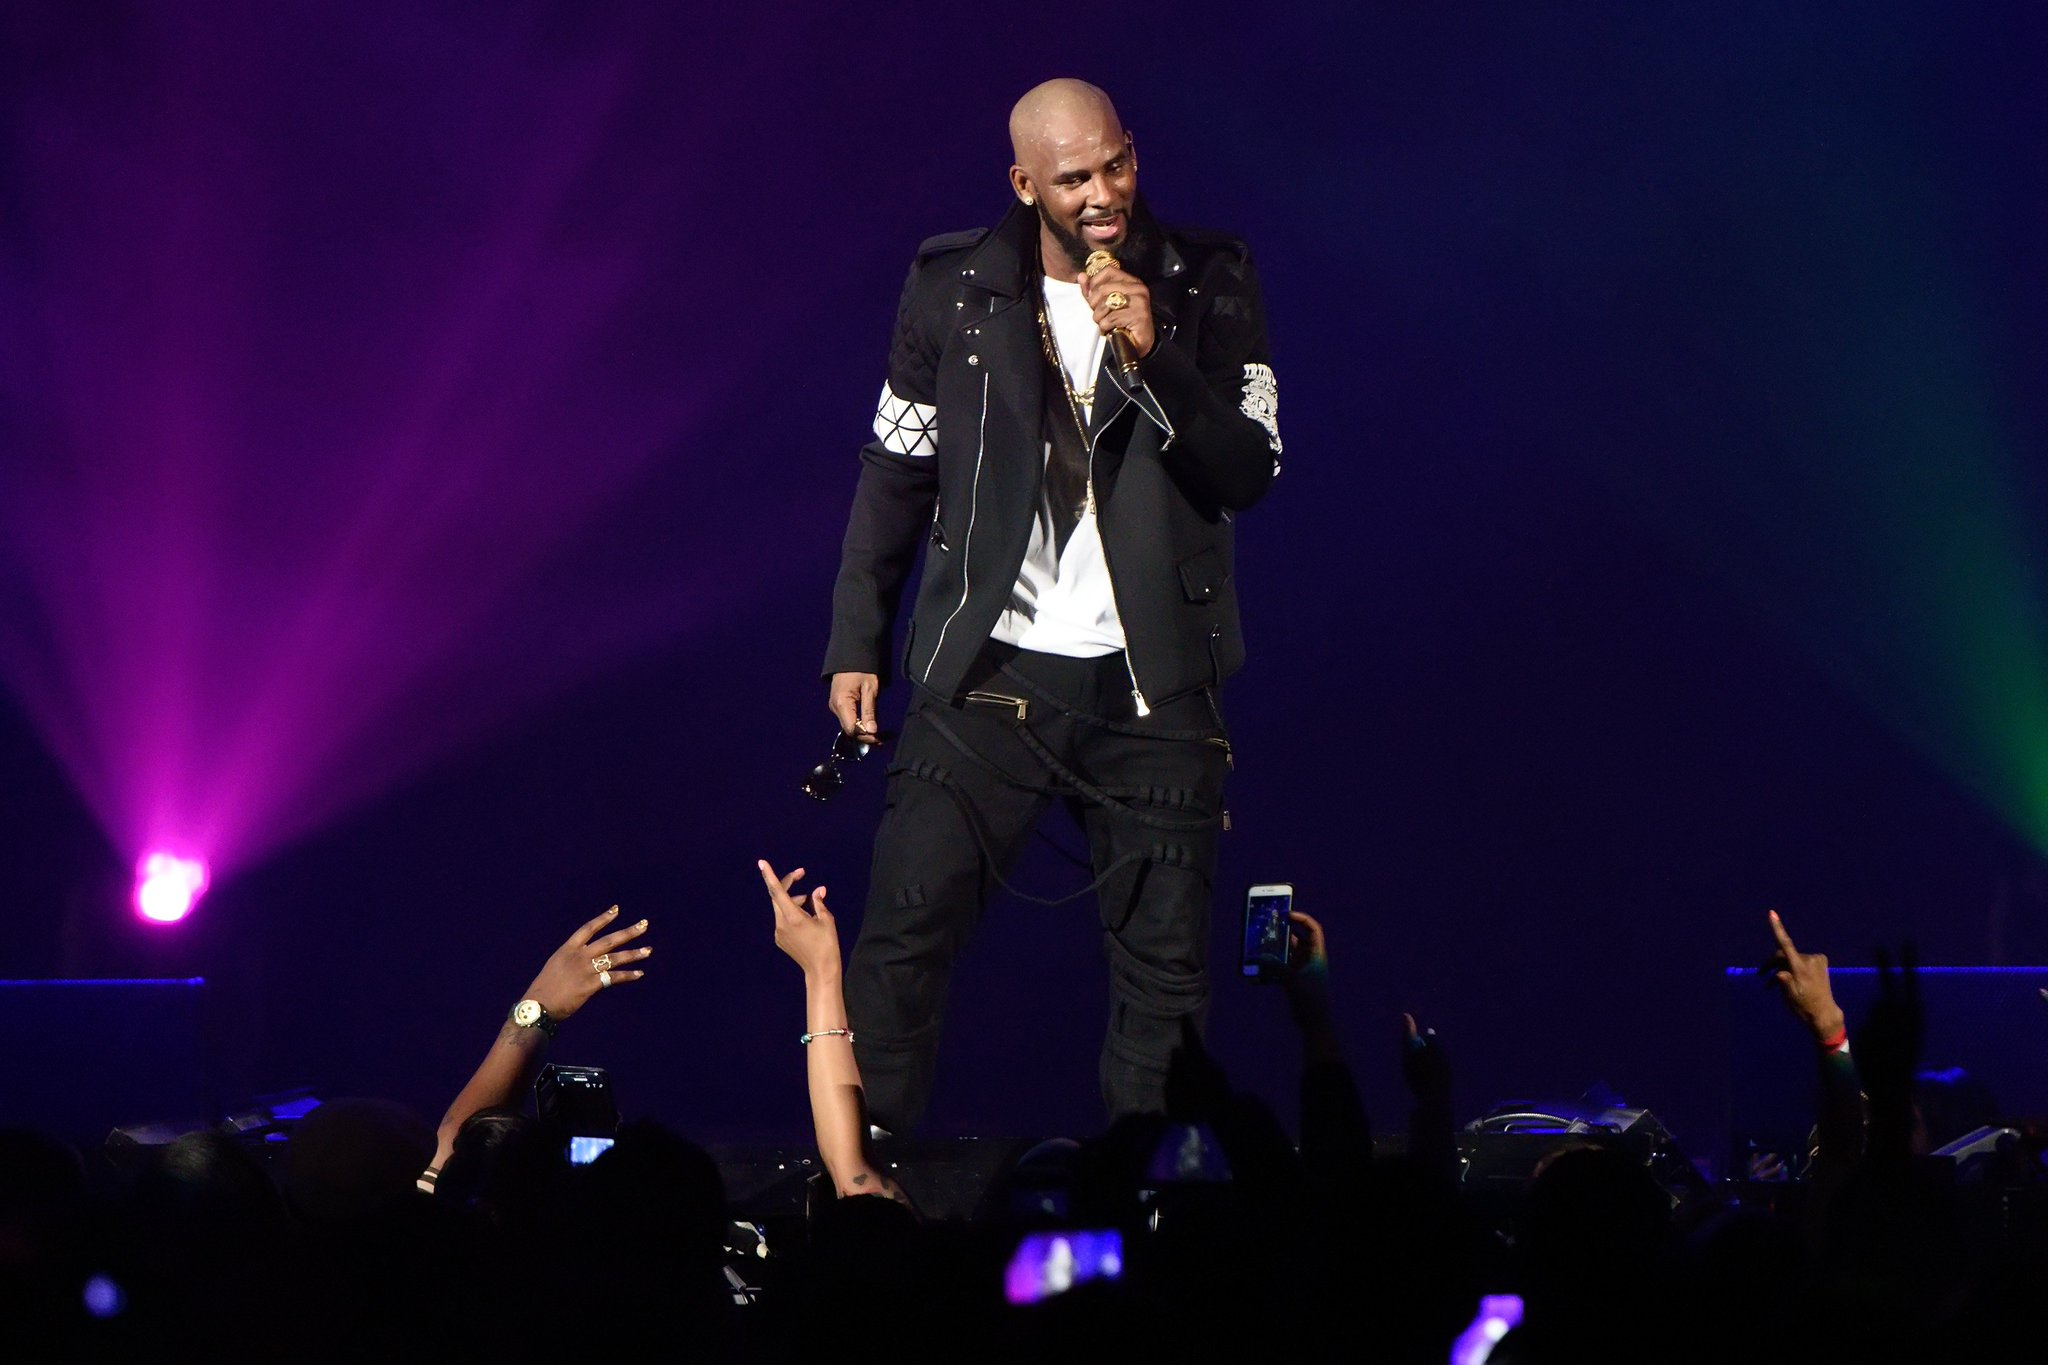 R. Kelly stages racy performance in North Carolina amid protest, allegations https://t.co/c8t6w4Sgsw https://t.co/haLH30wMyY